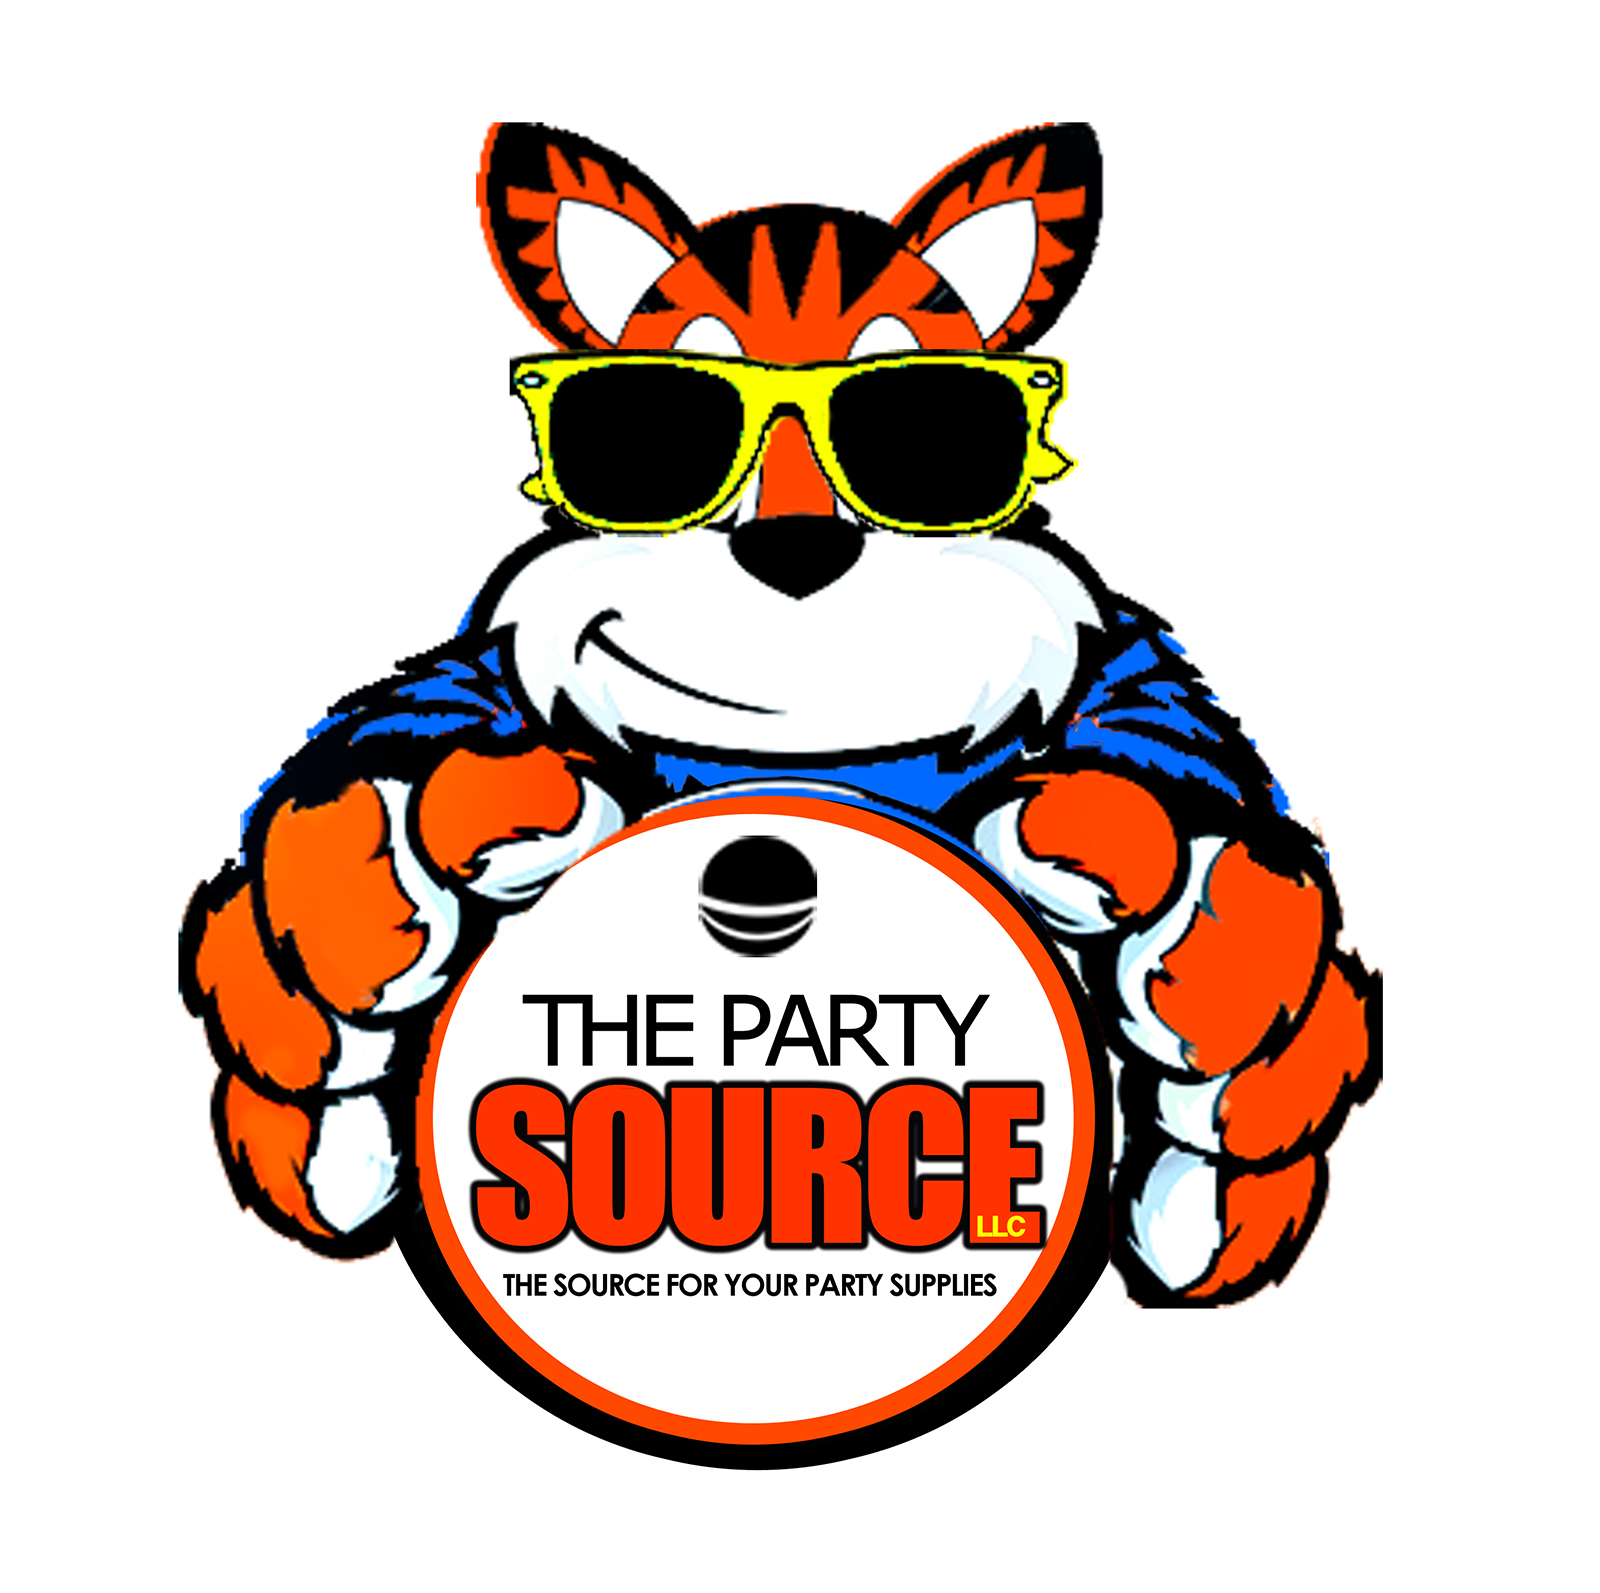 The Party Source LLC